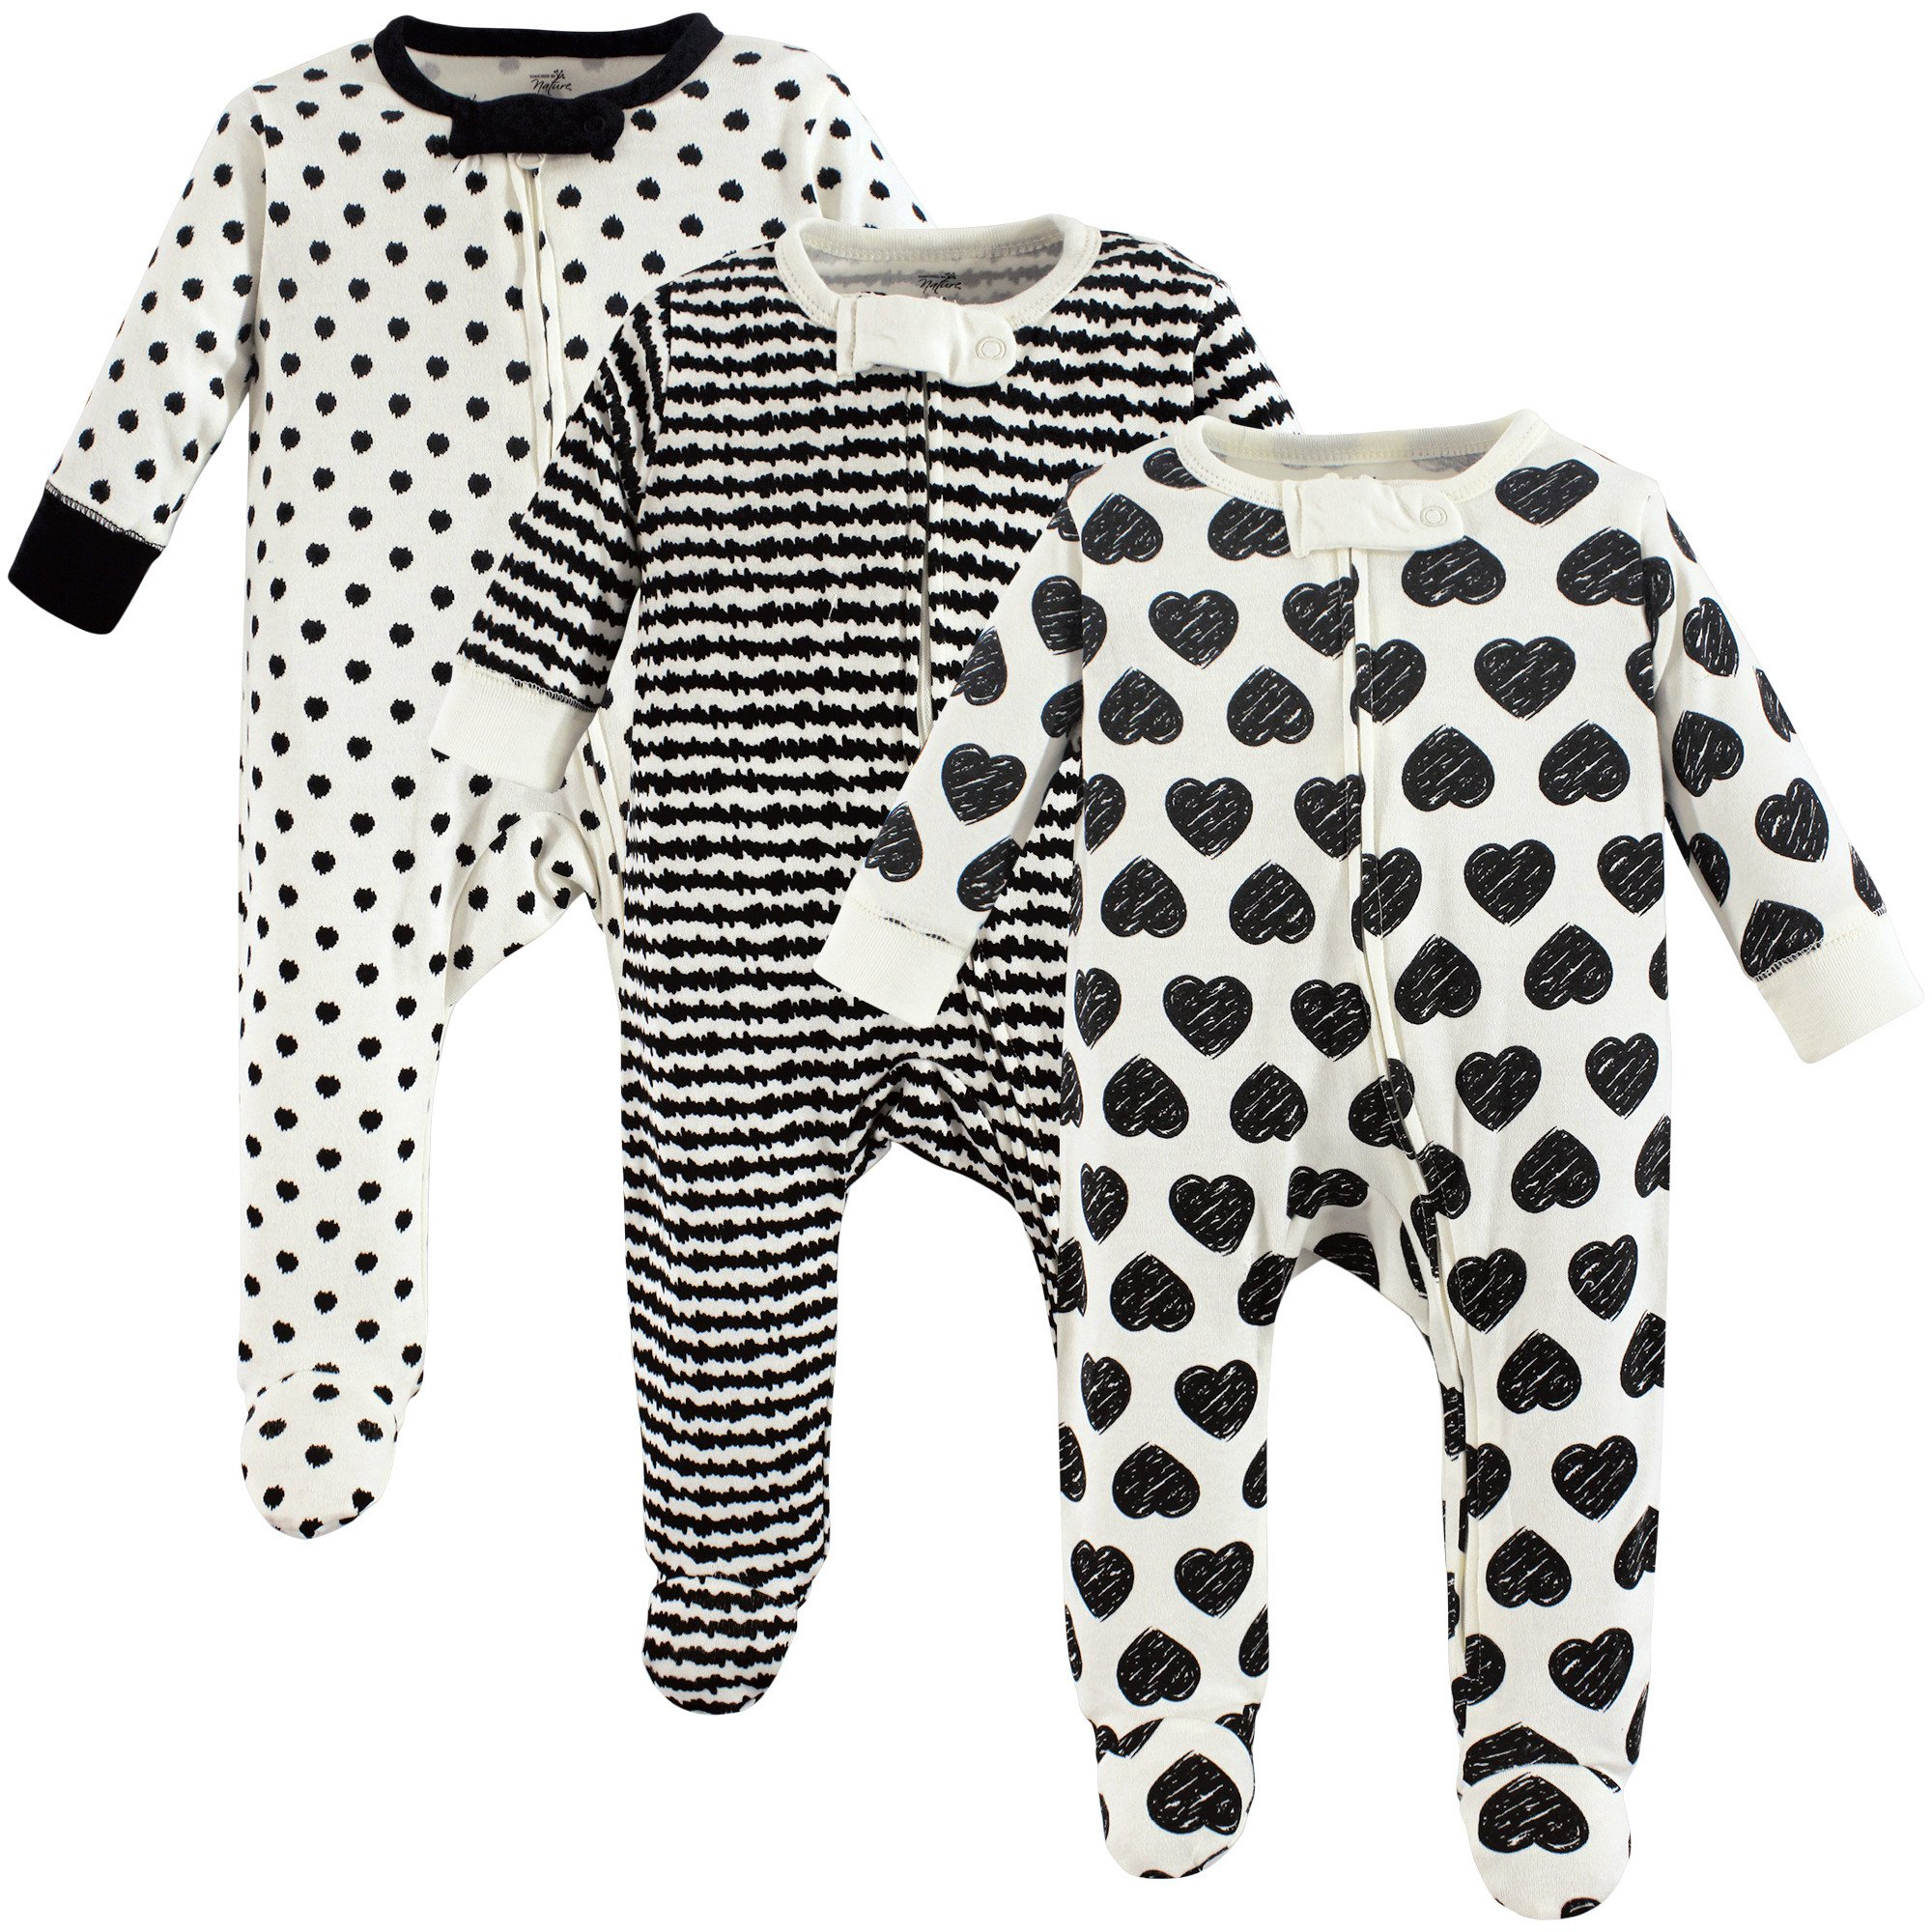 Touched by Nature Baby Organic Cotton Sleep and Play, 3 Pack, Heart, 3-6 Months